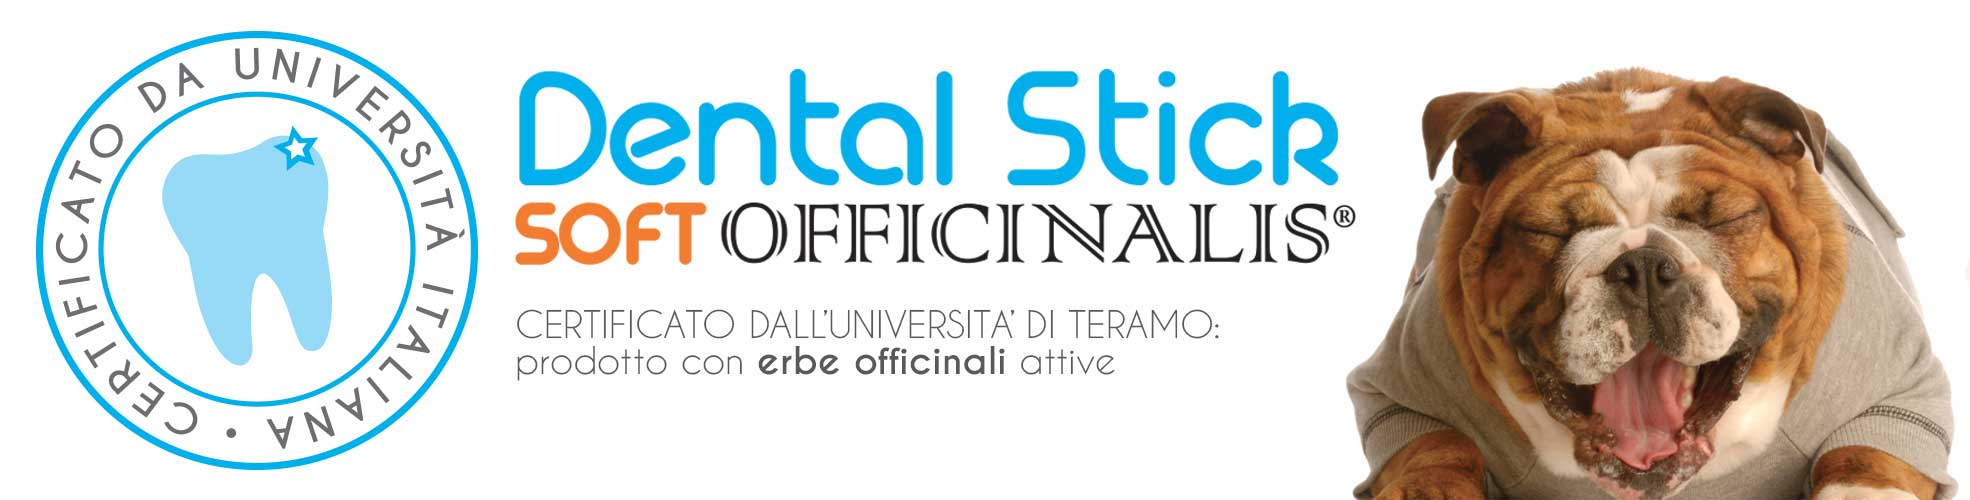 L'Università di Teramo ha certificato i nostri Dental Stick